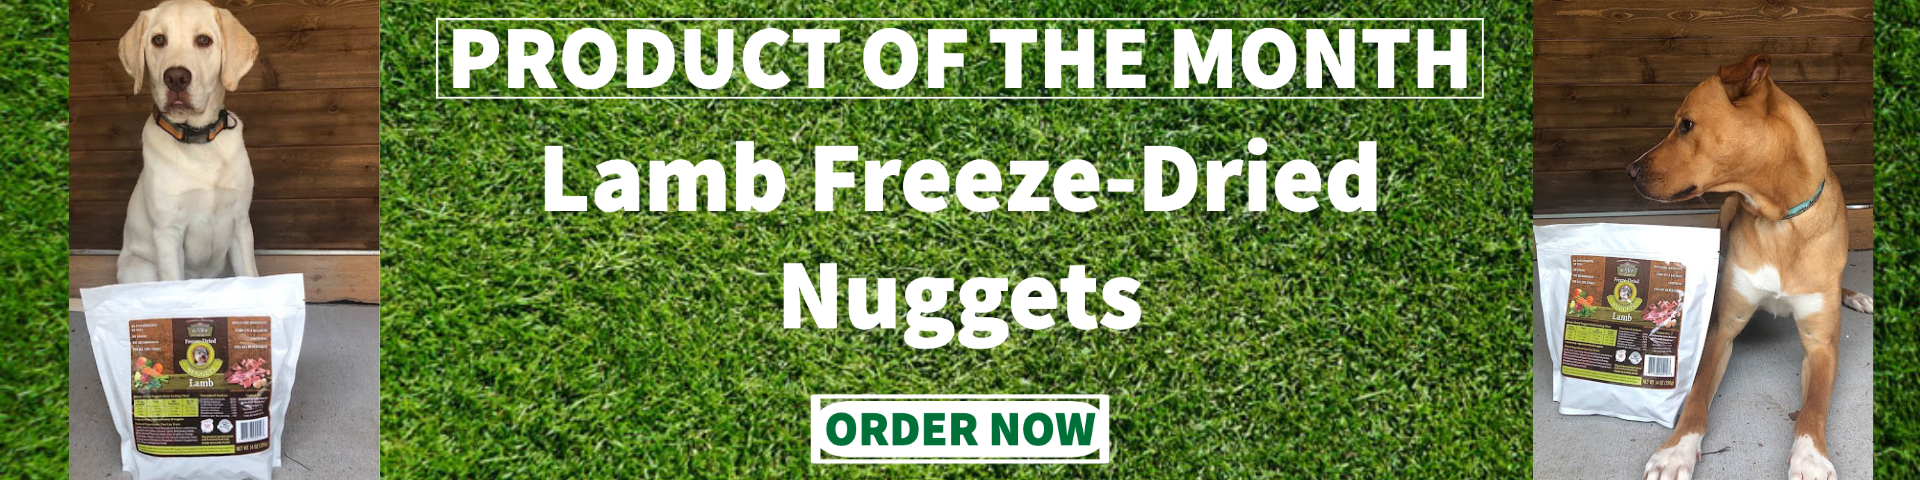 Barfworld Product of the Month July 2020 Lamb Freeze Dried Nuggets